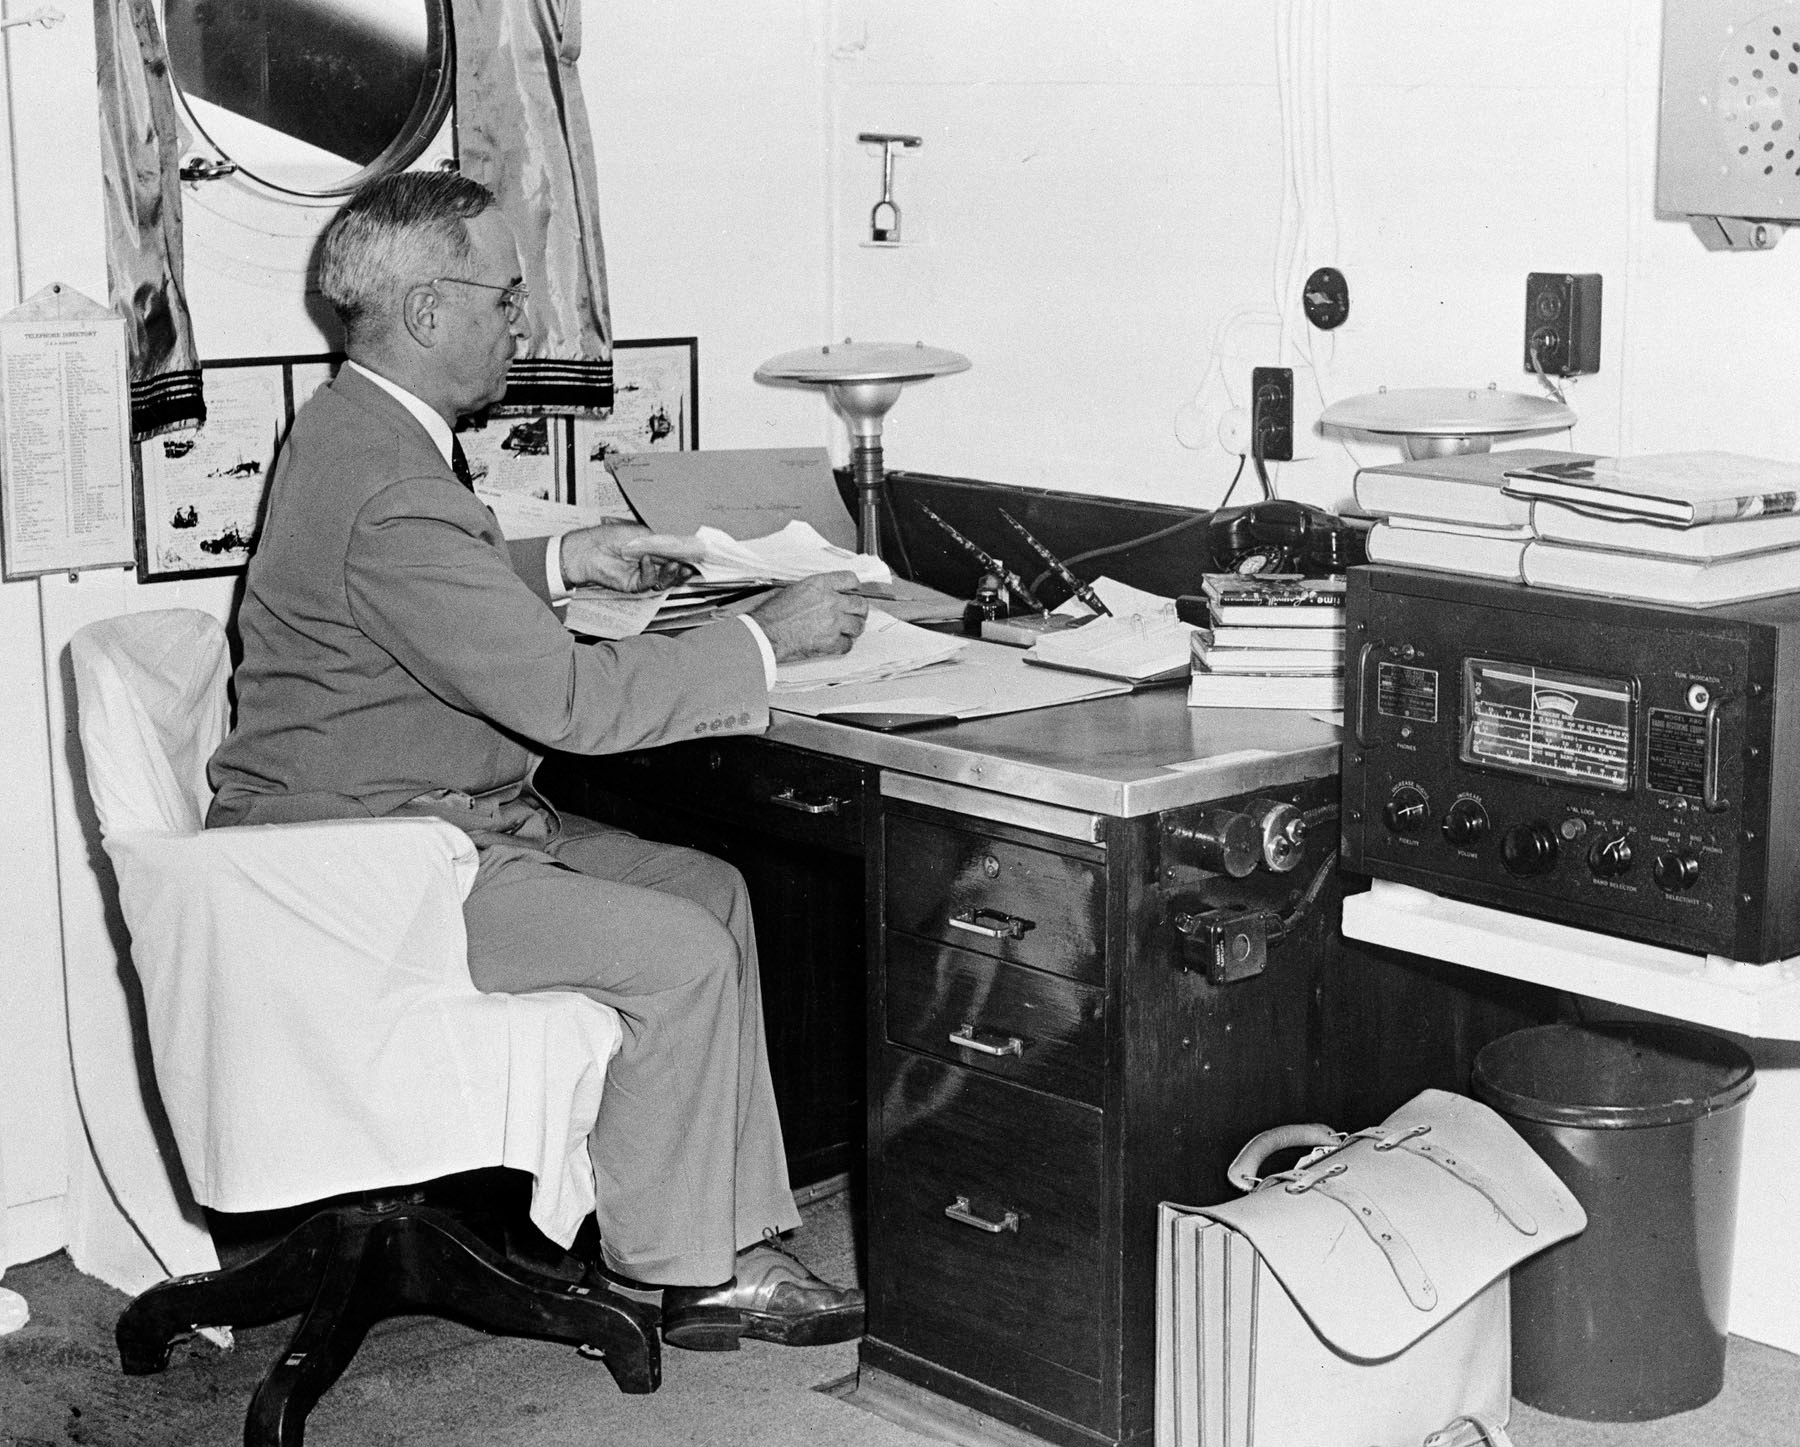 President Harry Truman sits at a desk with papers in front of him and a radio next to him